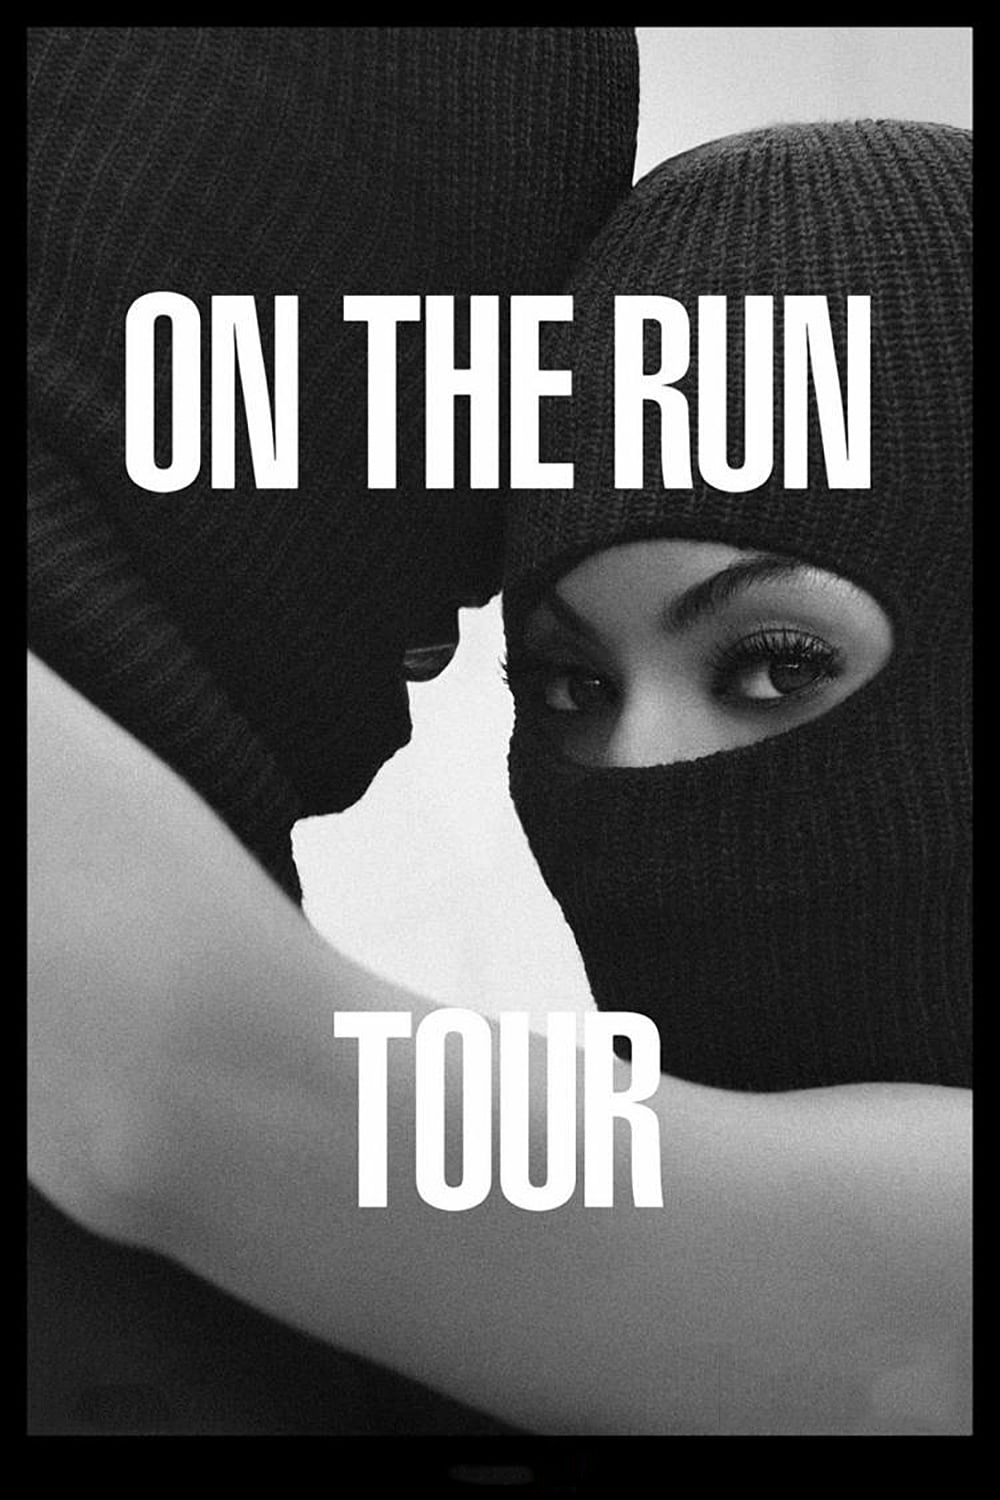 watch On the Run Tour: Beyoncé and Jay Z 2014 Stream online free